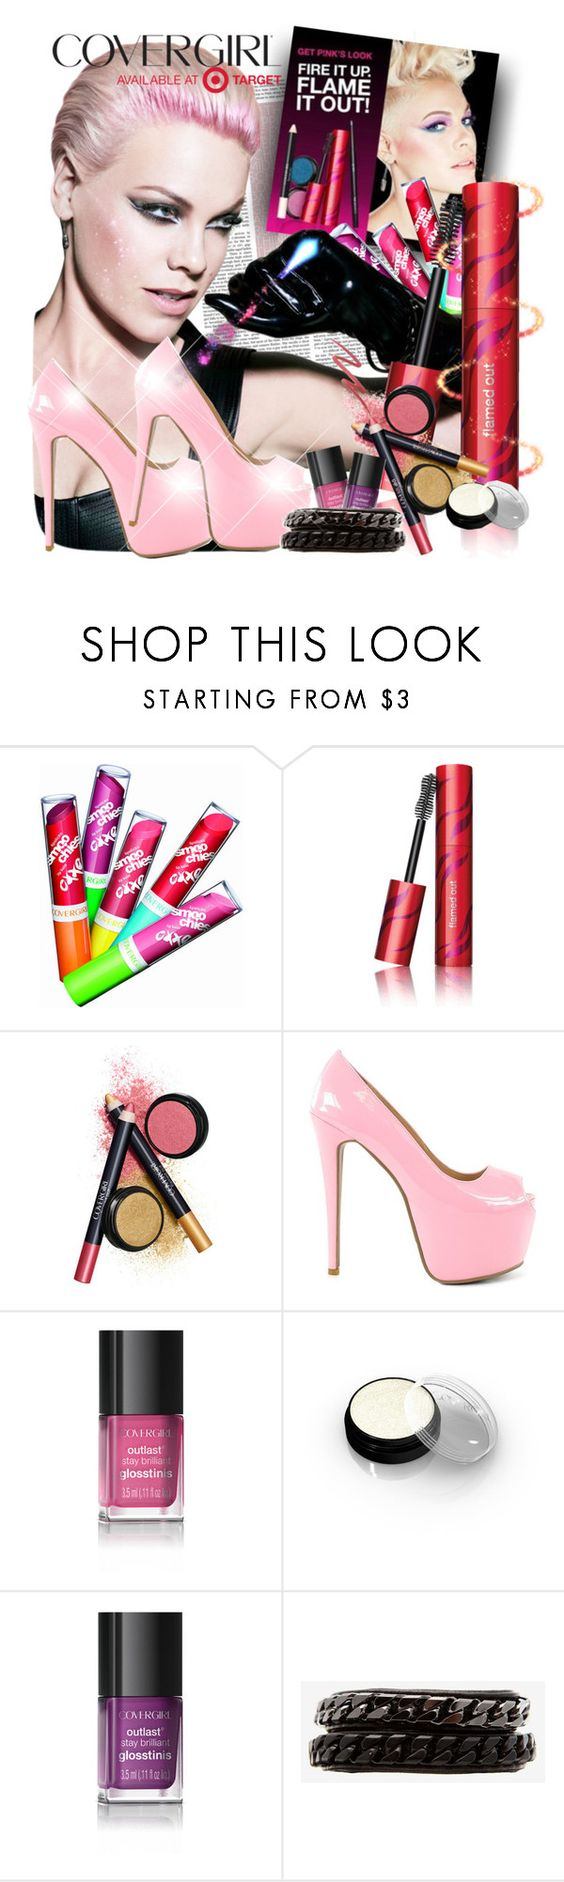 """""""Covergirl Flamed Out Bold"""" by hellobrit ❤ liked on Polyvore featuring COVERGIRL, Nly Shoes, Vita Fede, target and flamedoutbold"""